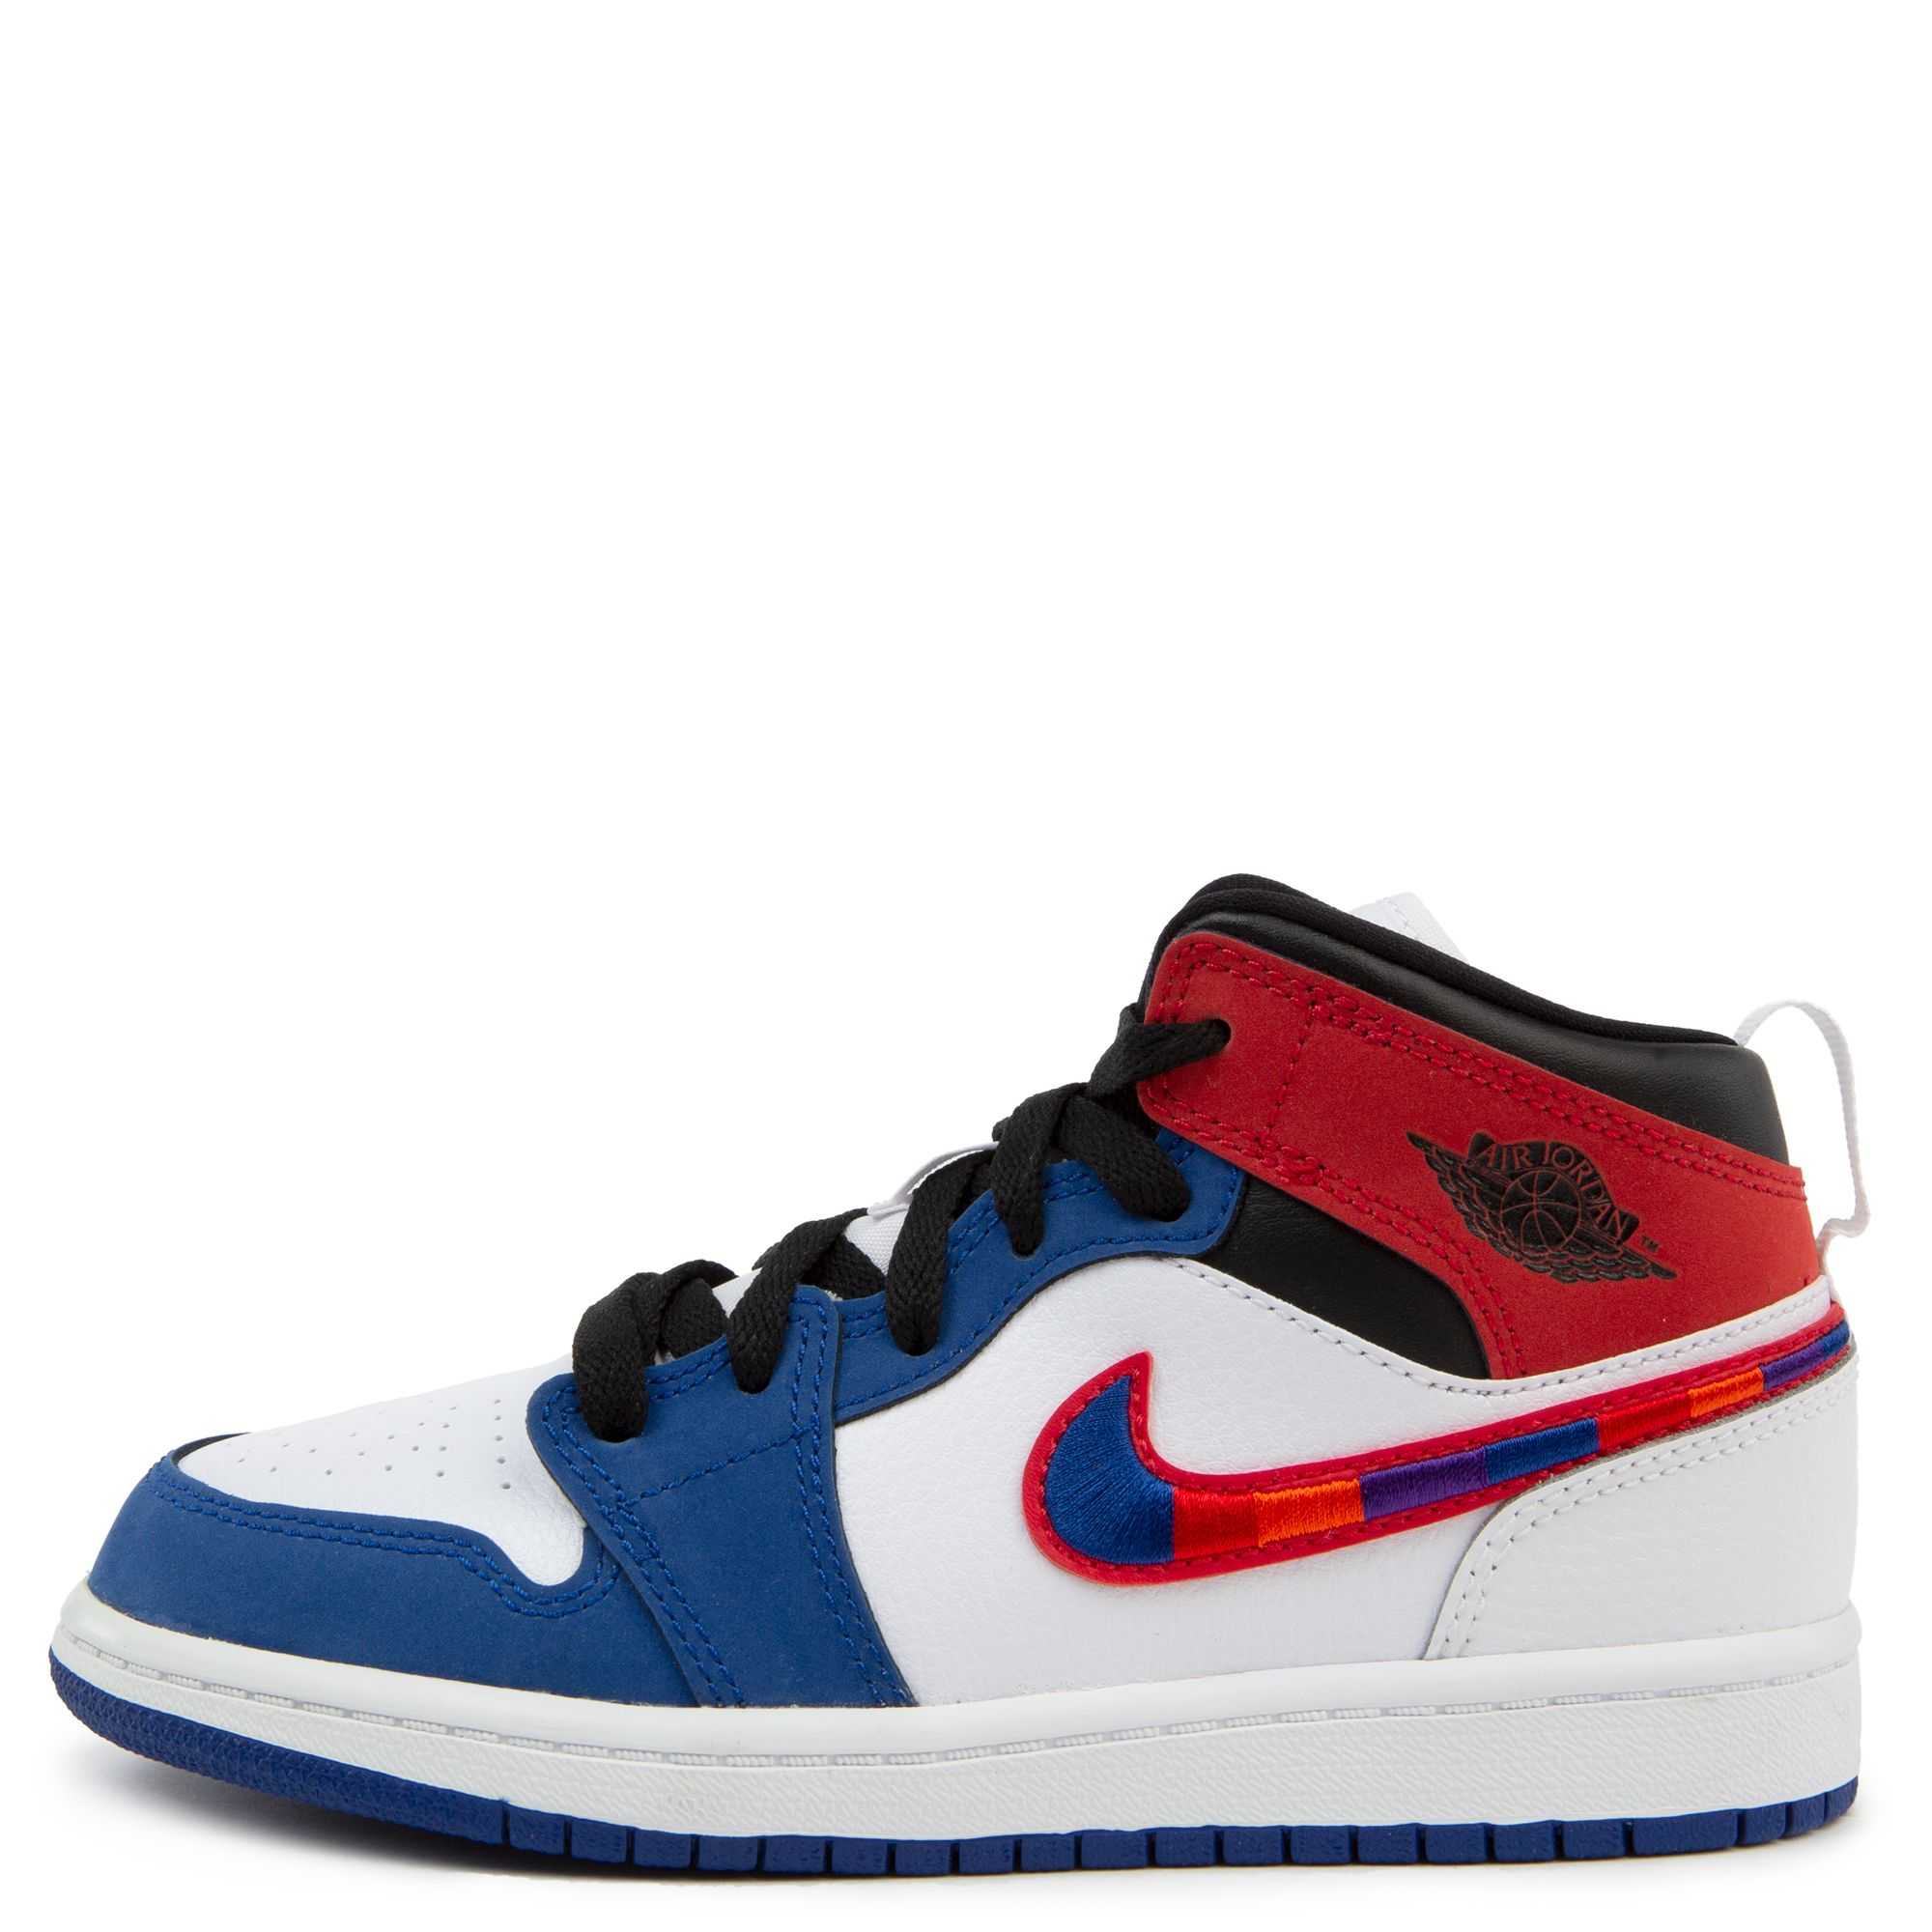 air jordan 1 mid blue toe